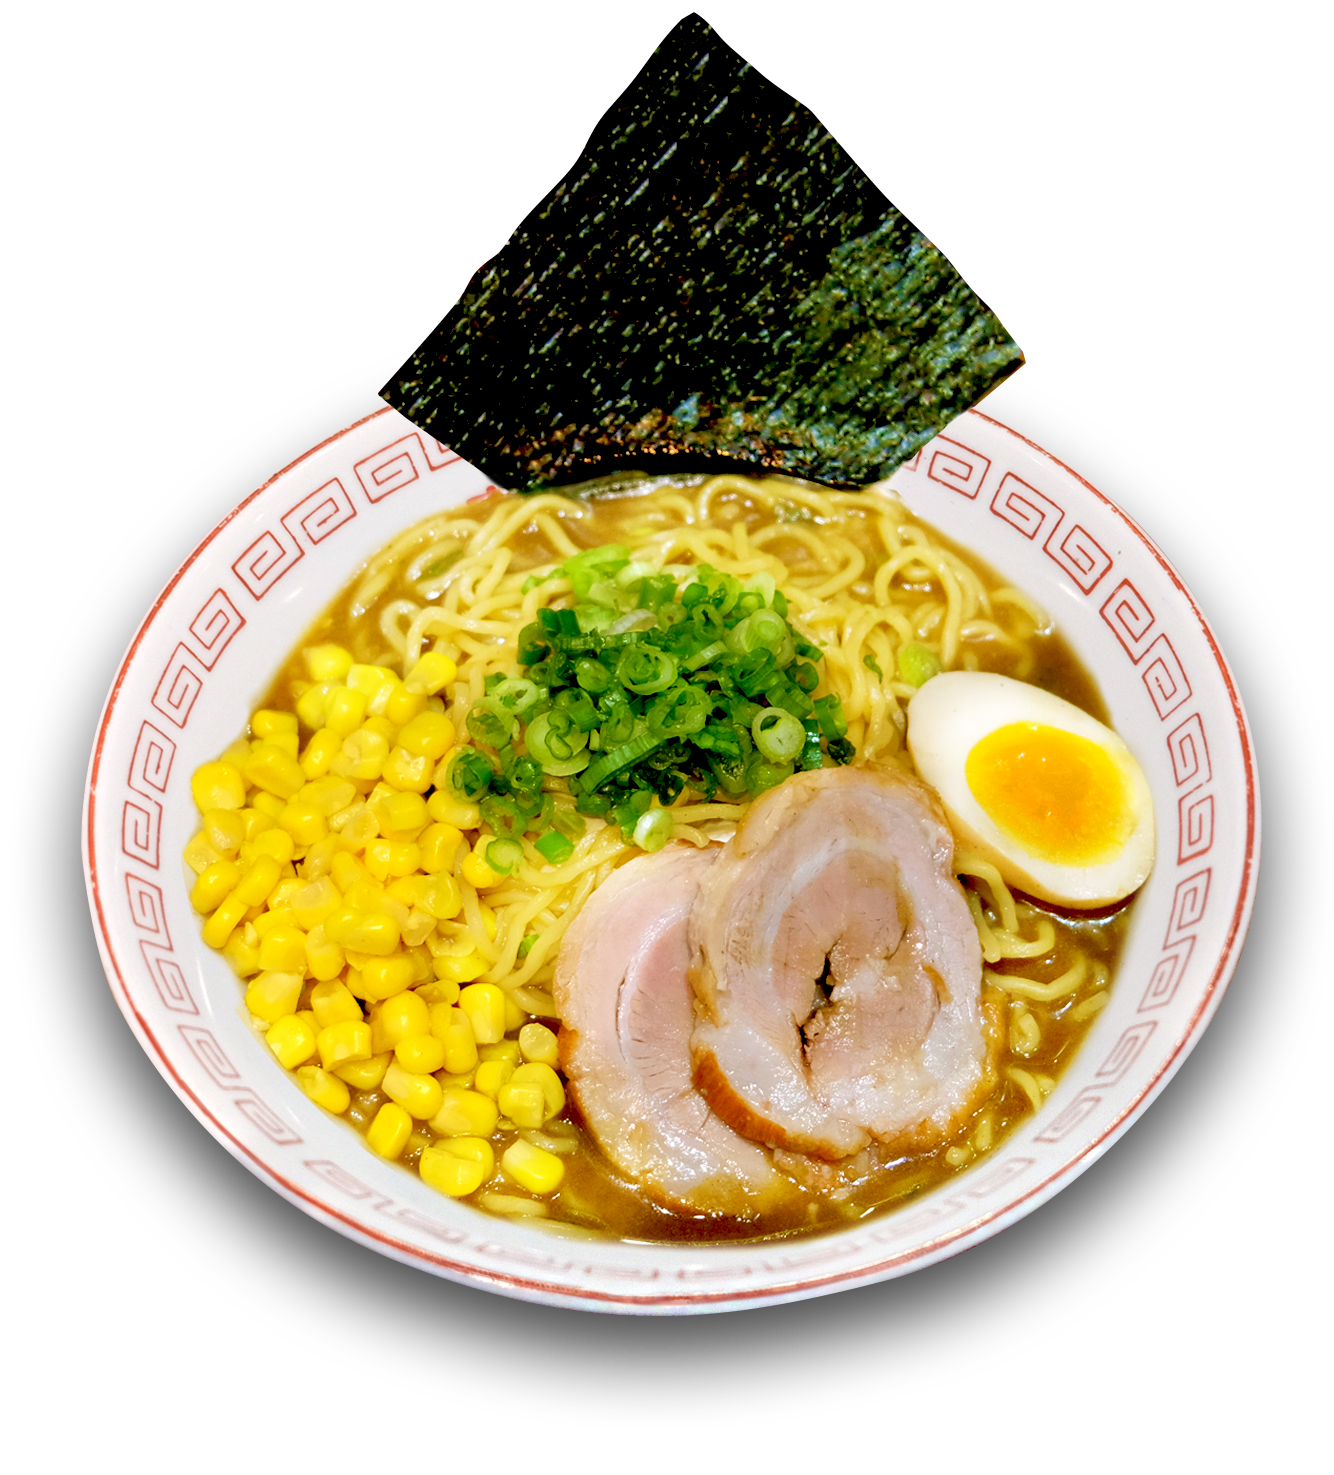 Curry Ramen - Japanese curry flavored chicken broth, roasted pork, egg, corn, scallions and seaweed$12 (Appetizer Combo $17)